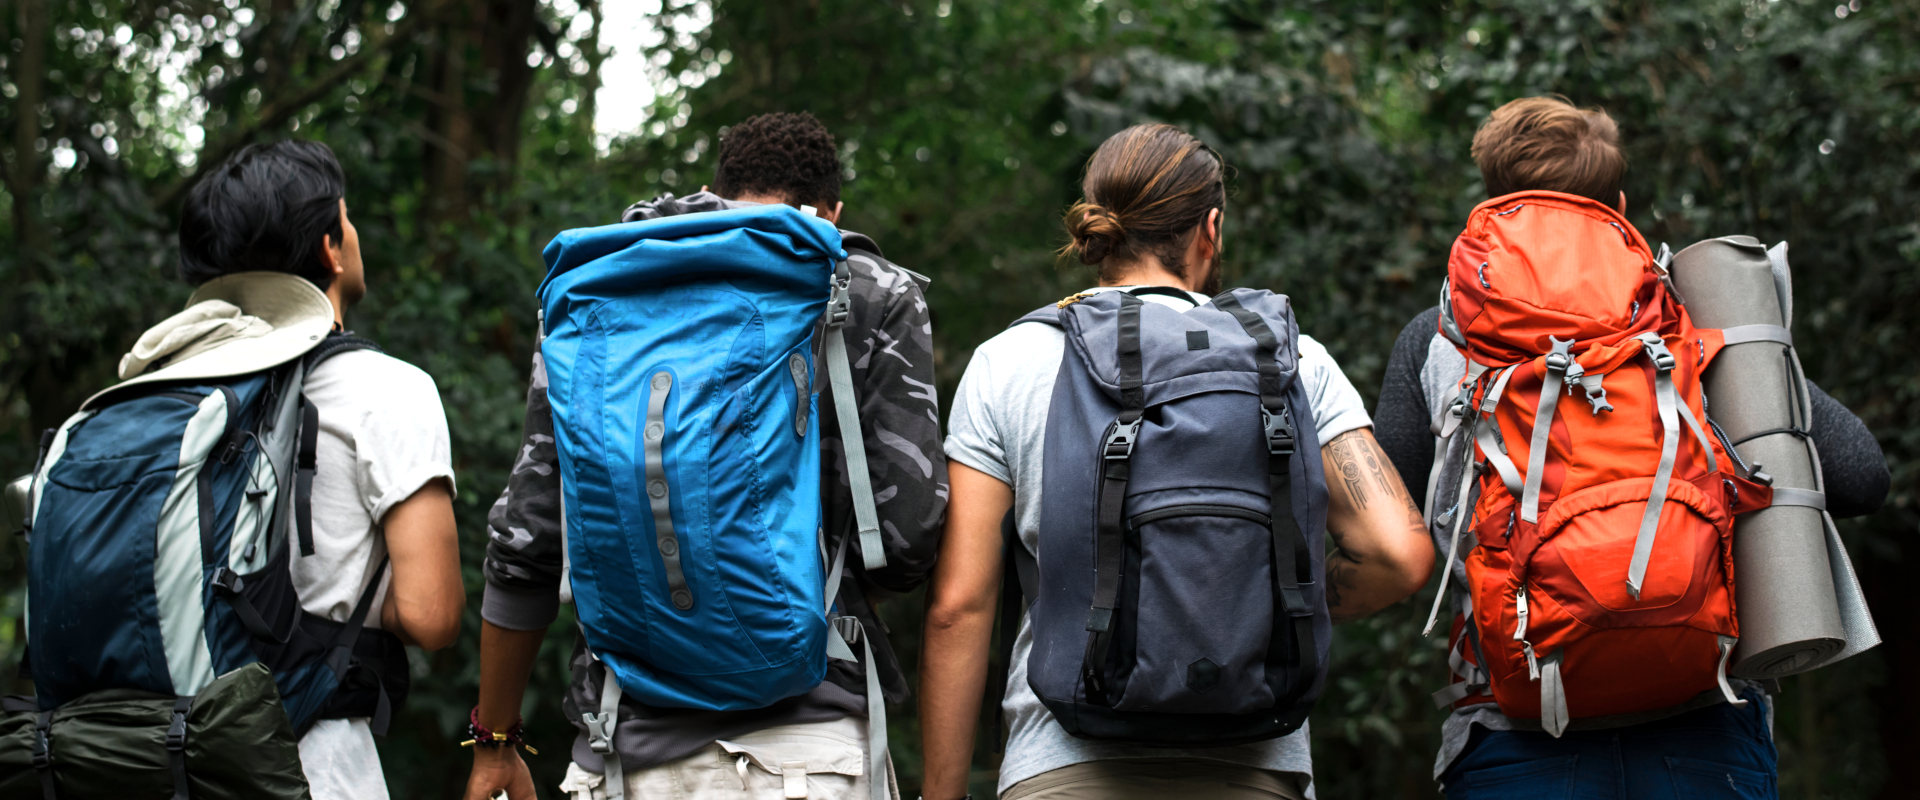 Trekking together in a forest